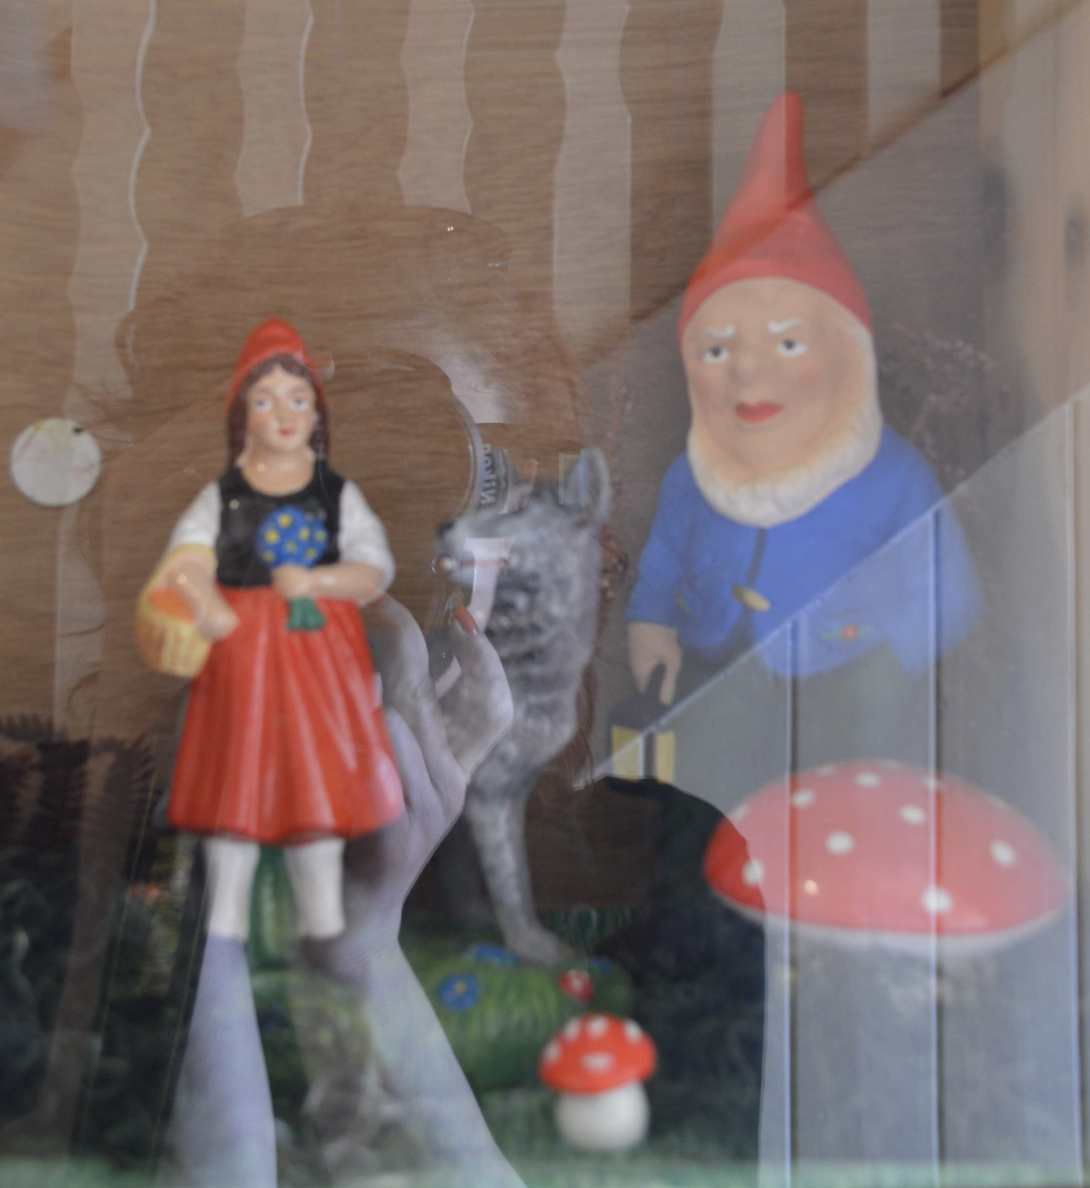 garden gnome museum in thuringia Germany birthplace of the gnome A collection of involuntary self portraits